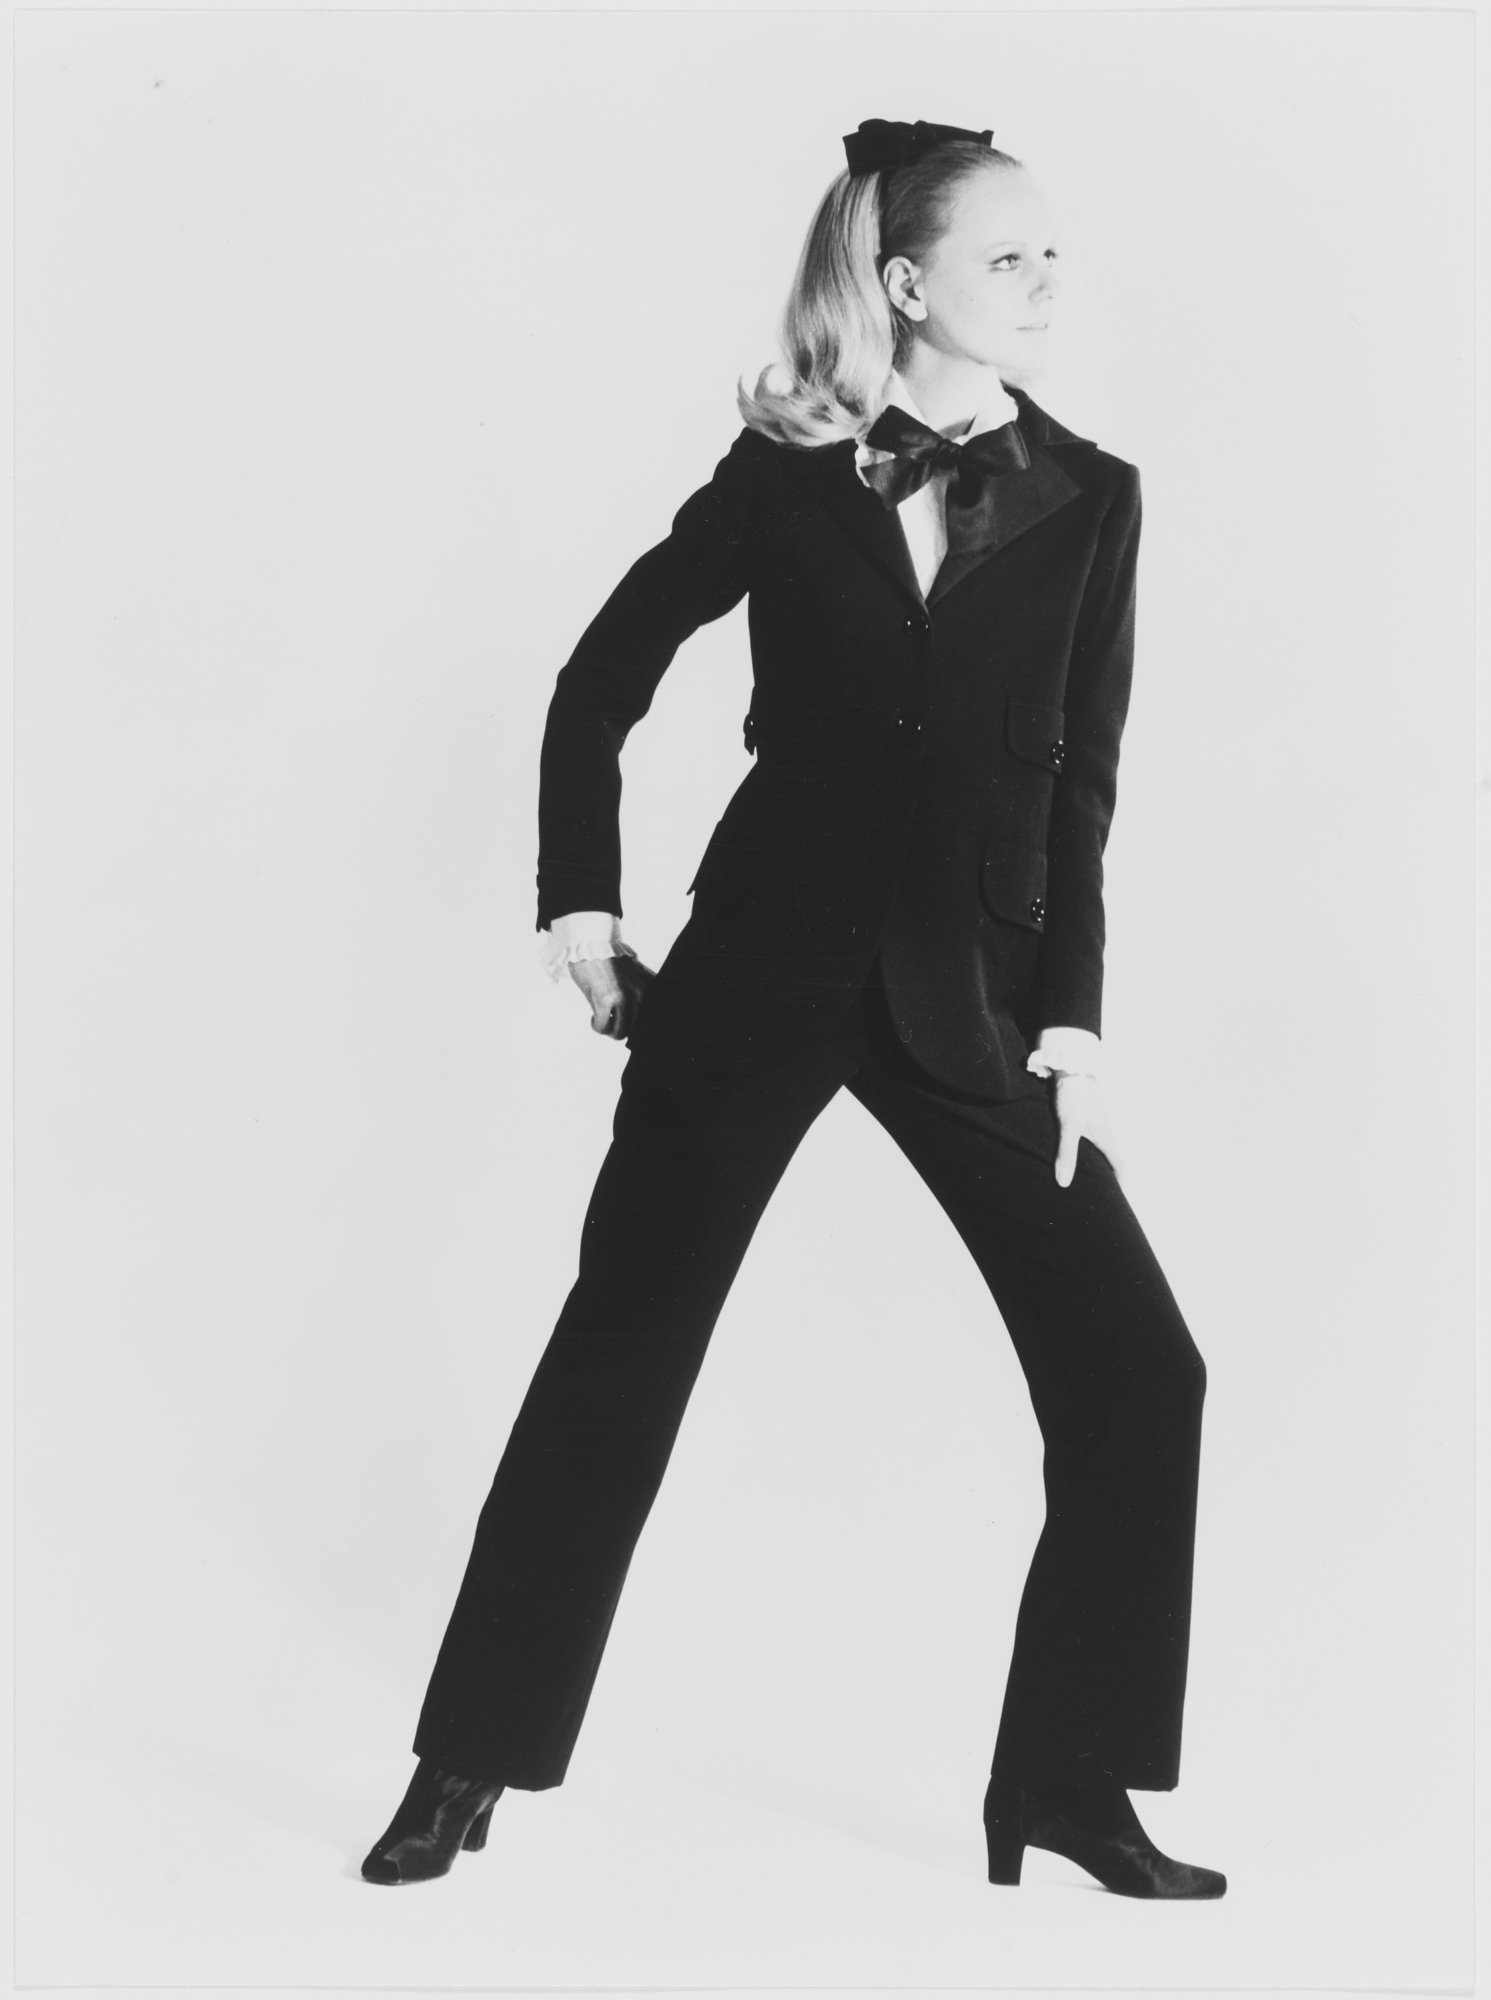 3af3f92ec14 First tuxedo, worn by Ulla. Autumn-winter 1966 haute couture collection.  Photograph by Gérard Pataa. © Musée Yves Saint Laurent Paris / Gérard Pataa  - DR